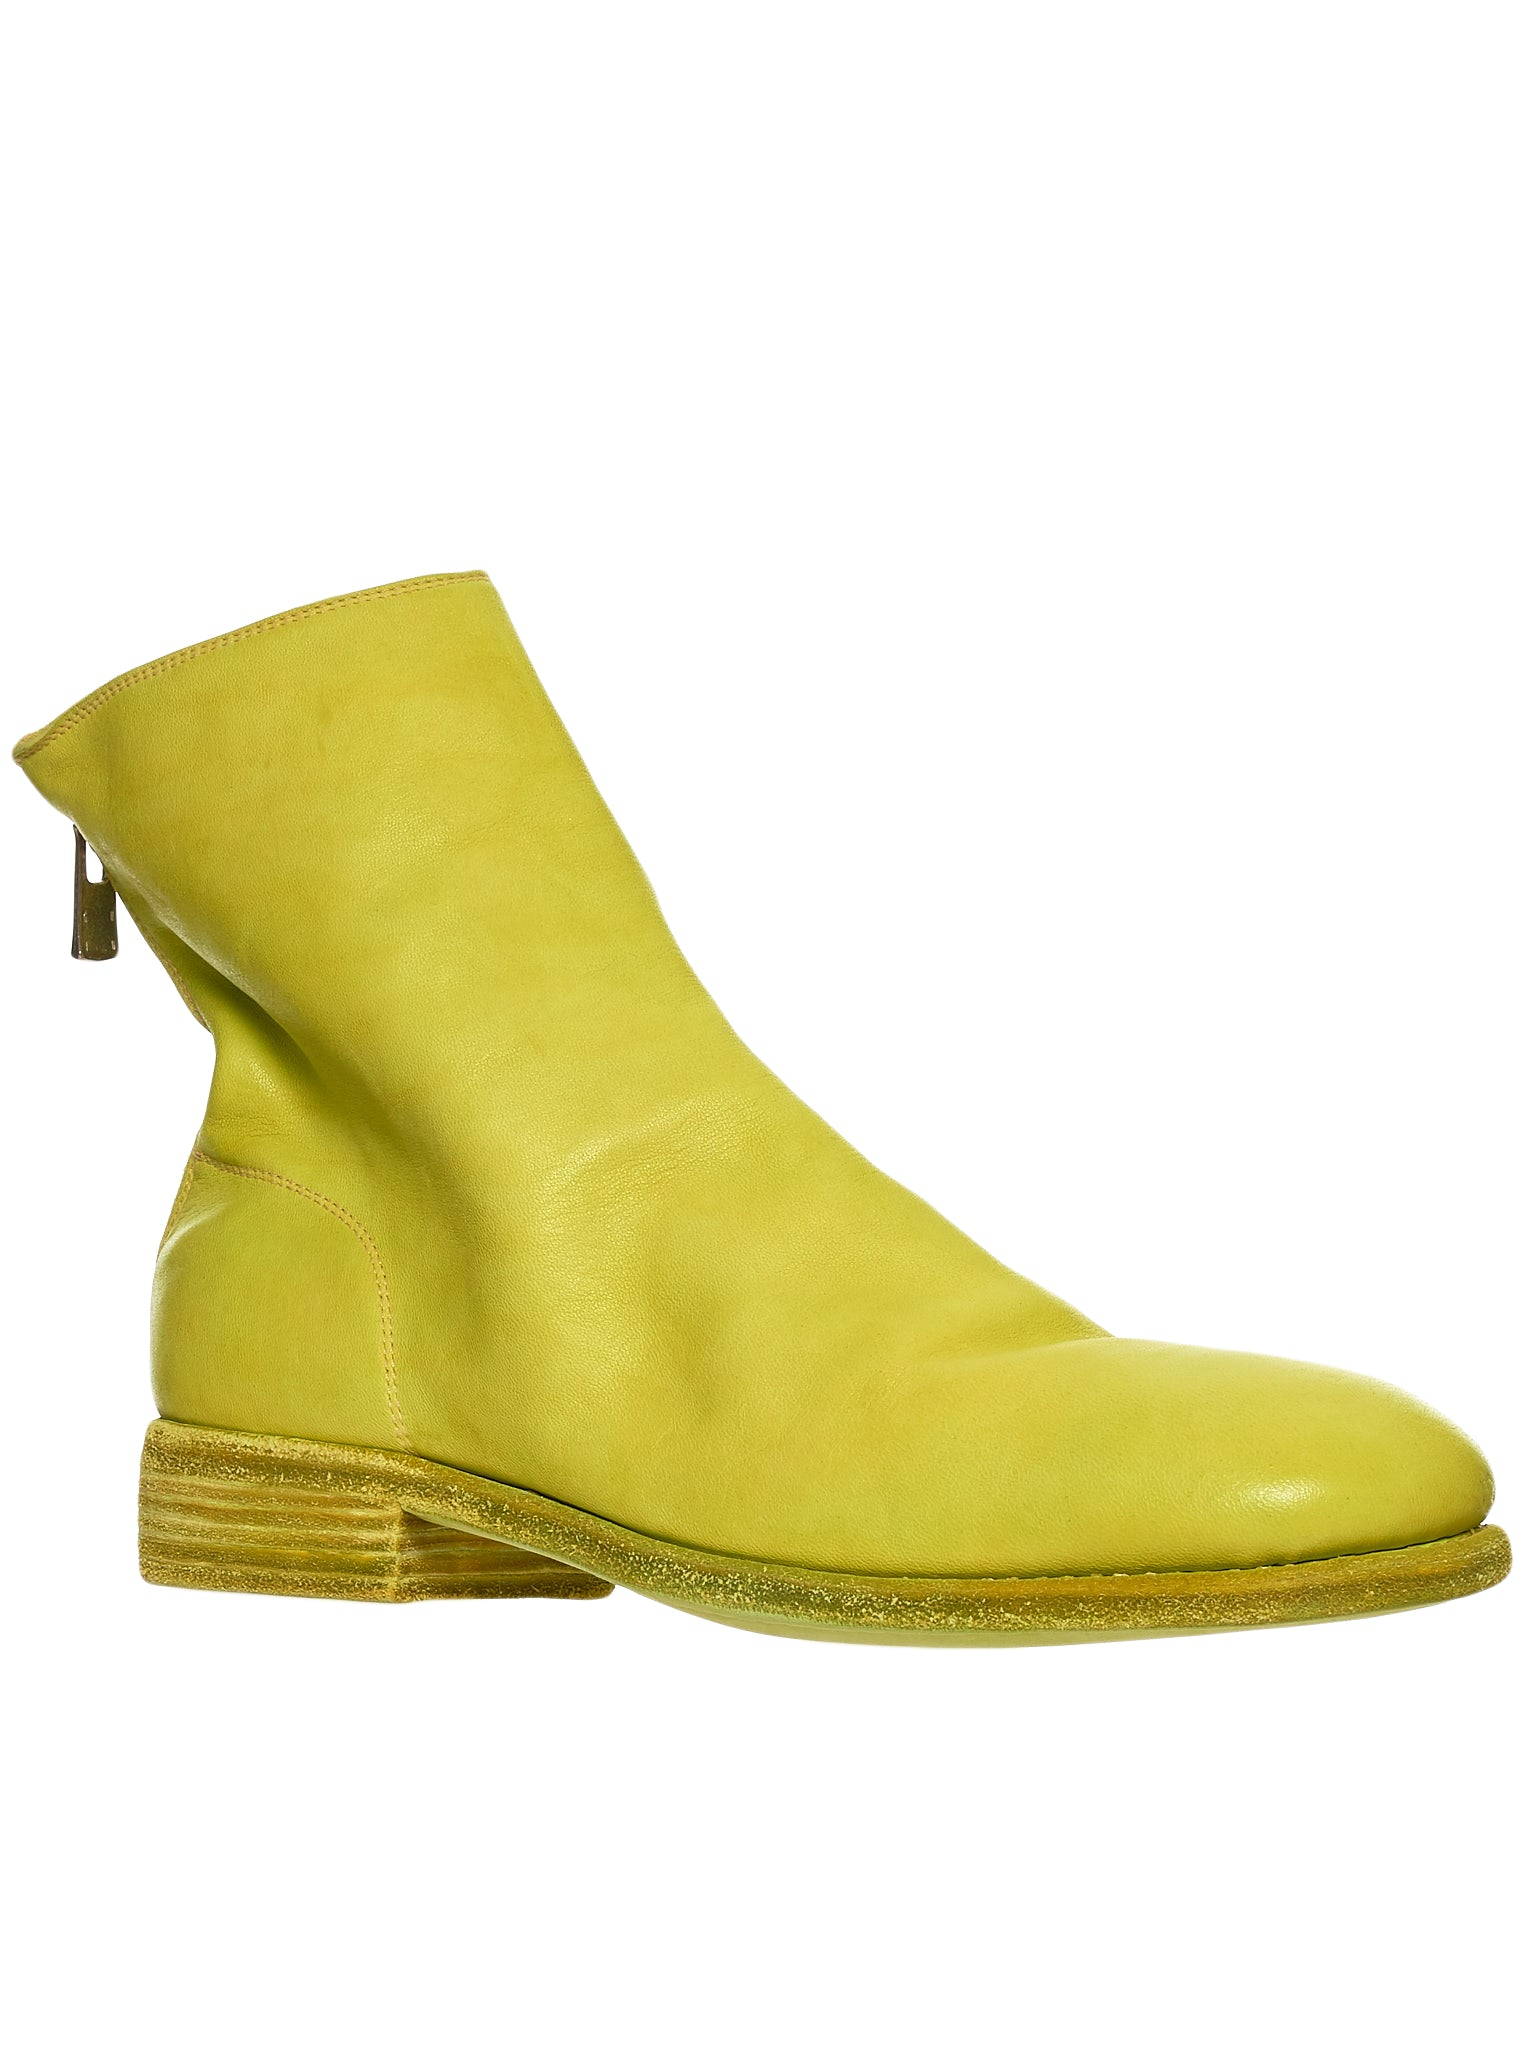 Guidi 986 Yellow Boot - Hlorenzo Side